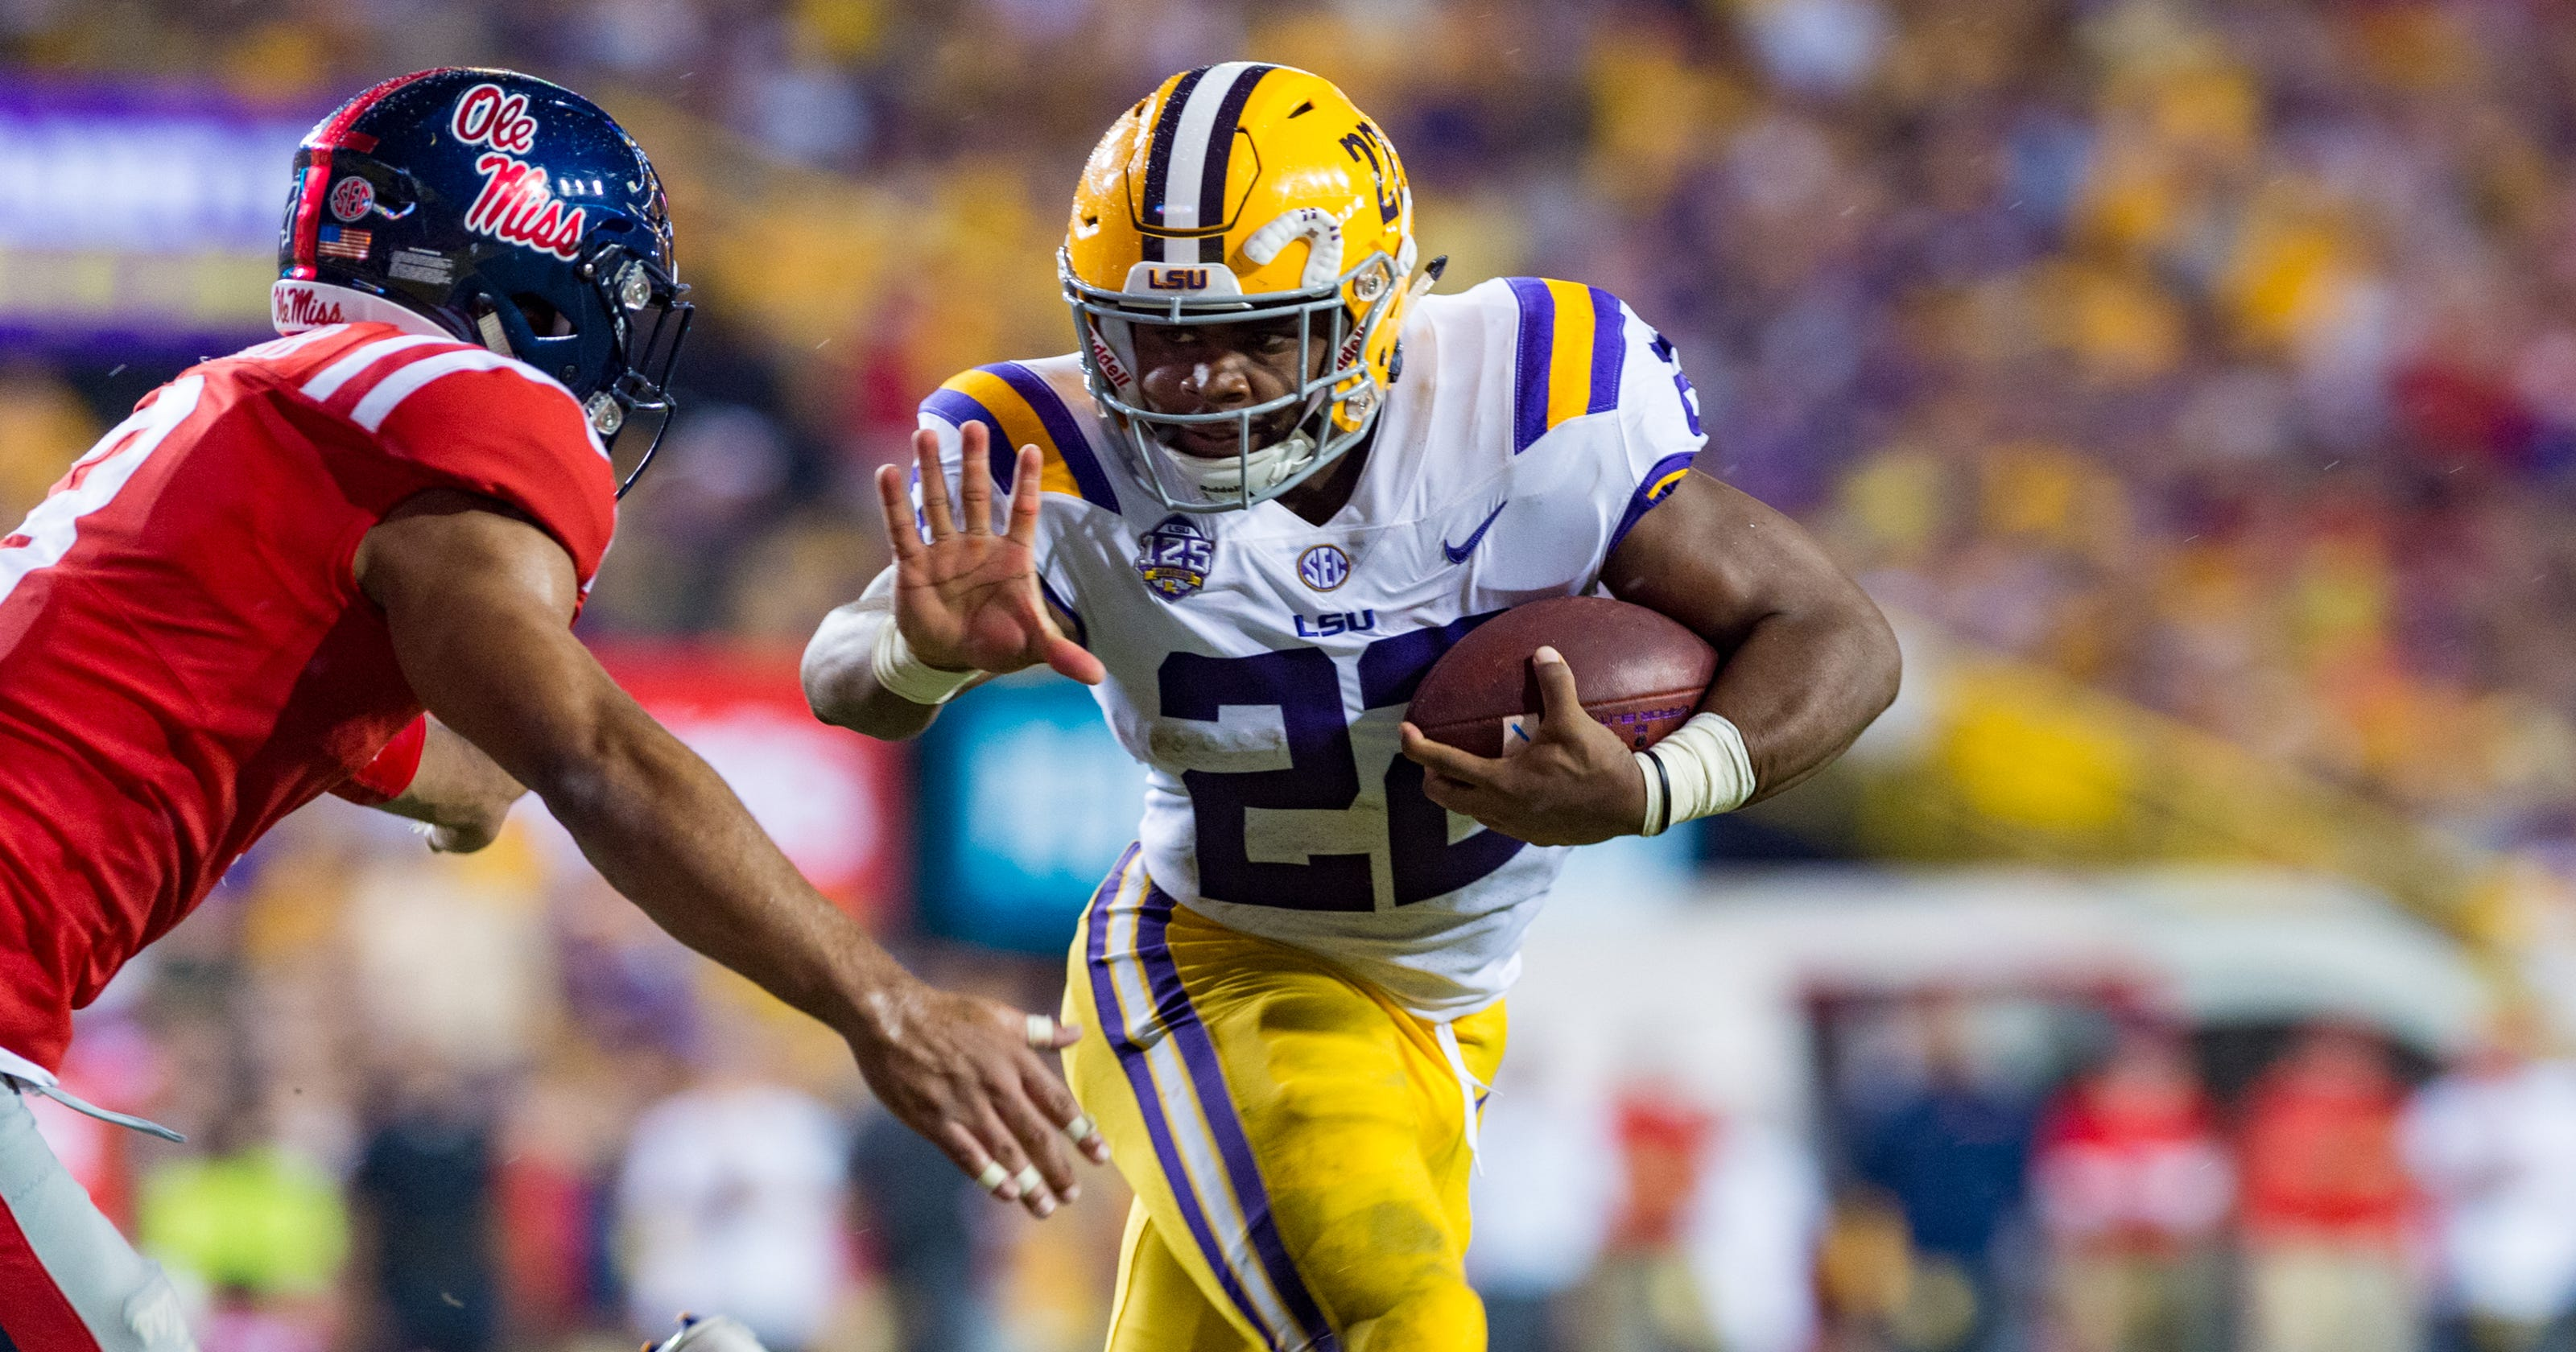 Police  18-year-old fatally shot by LSU football player was attempting  armed robbery 9d8c4df5f